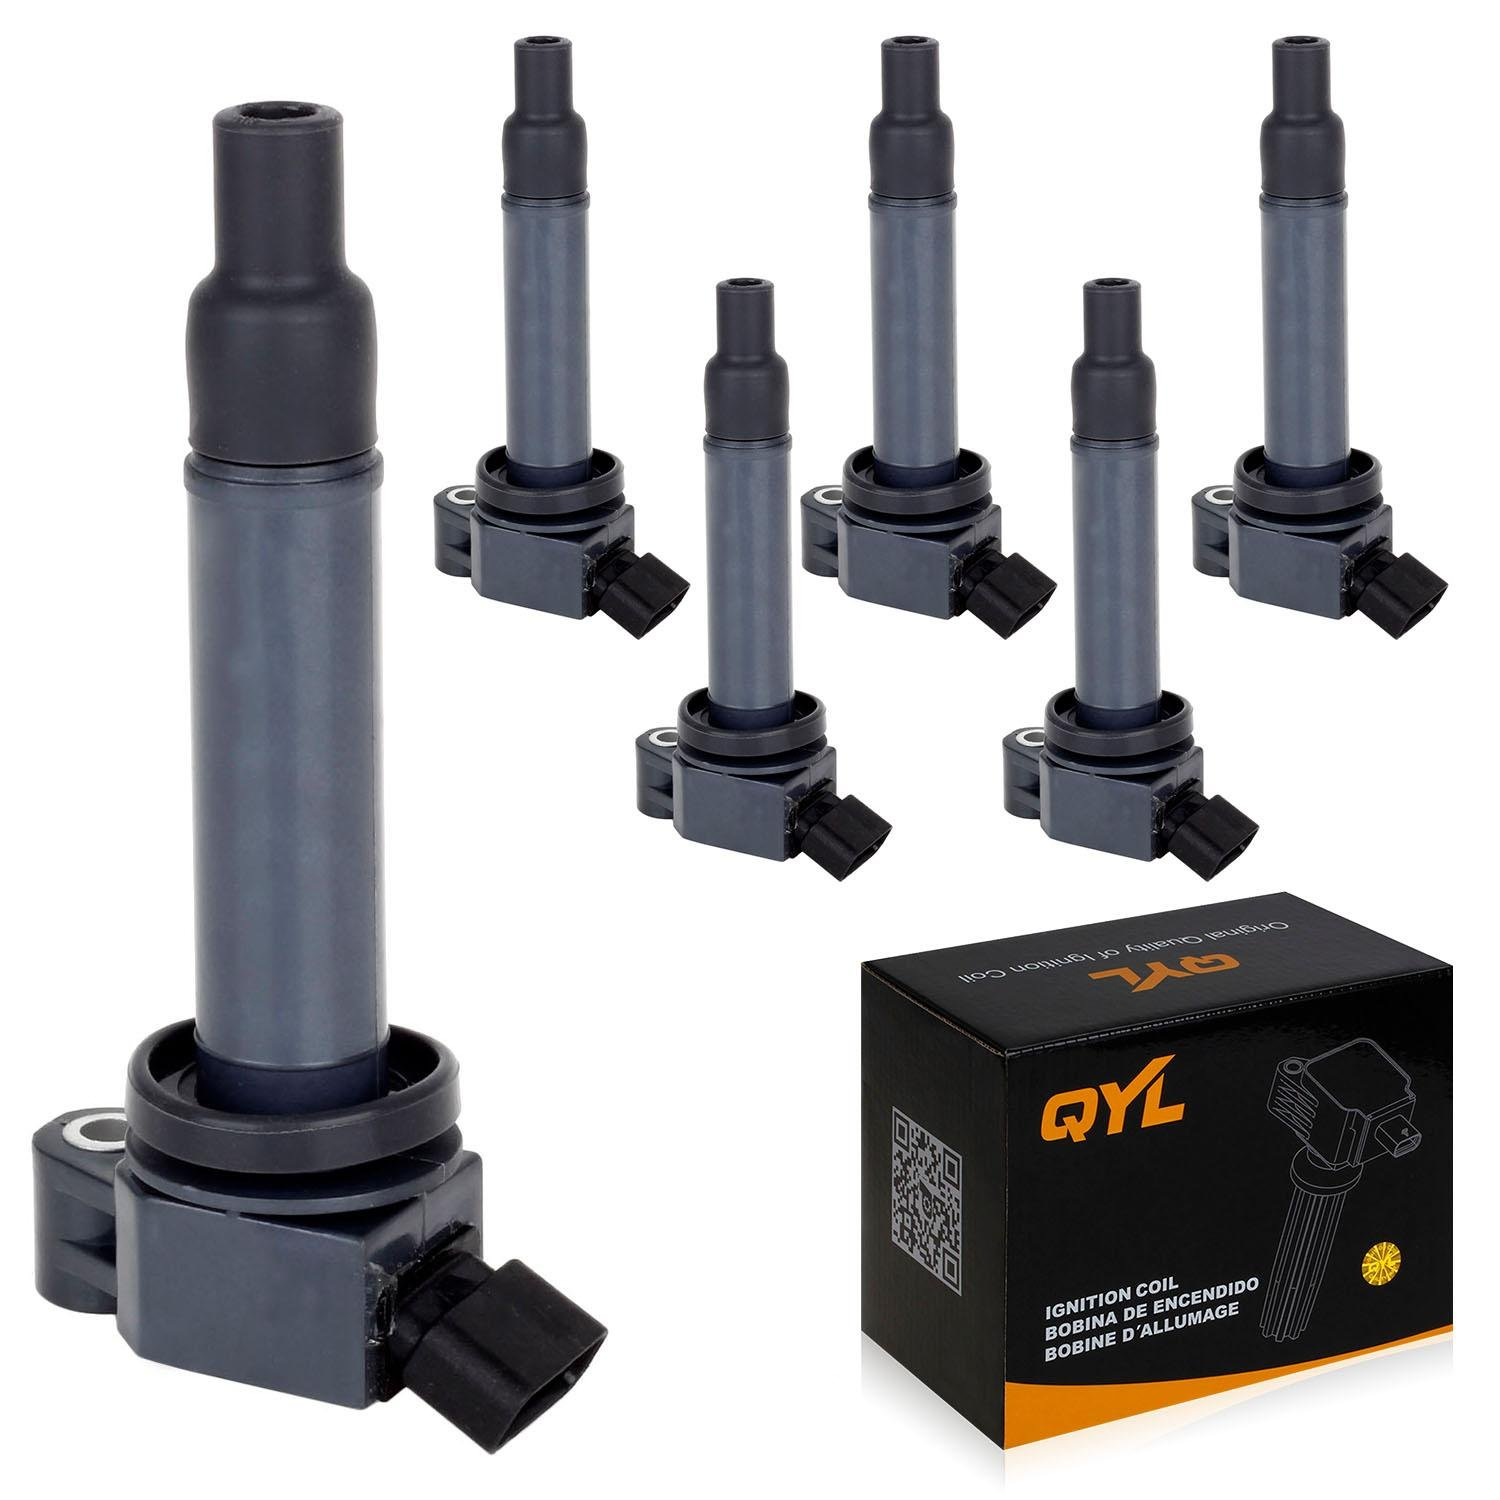 QYL Pack o f 6 Ignition Coils for Lexus ES300 RX300 Toyota Avalon Camry Highlander Sienna 3.0L V6 UF267 C1175 UF-267